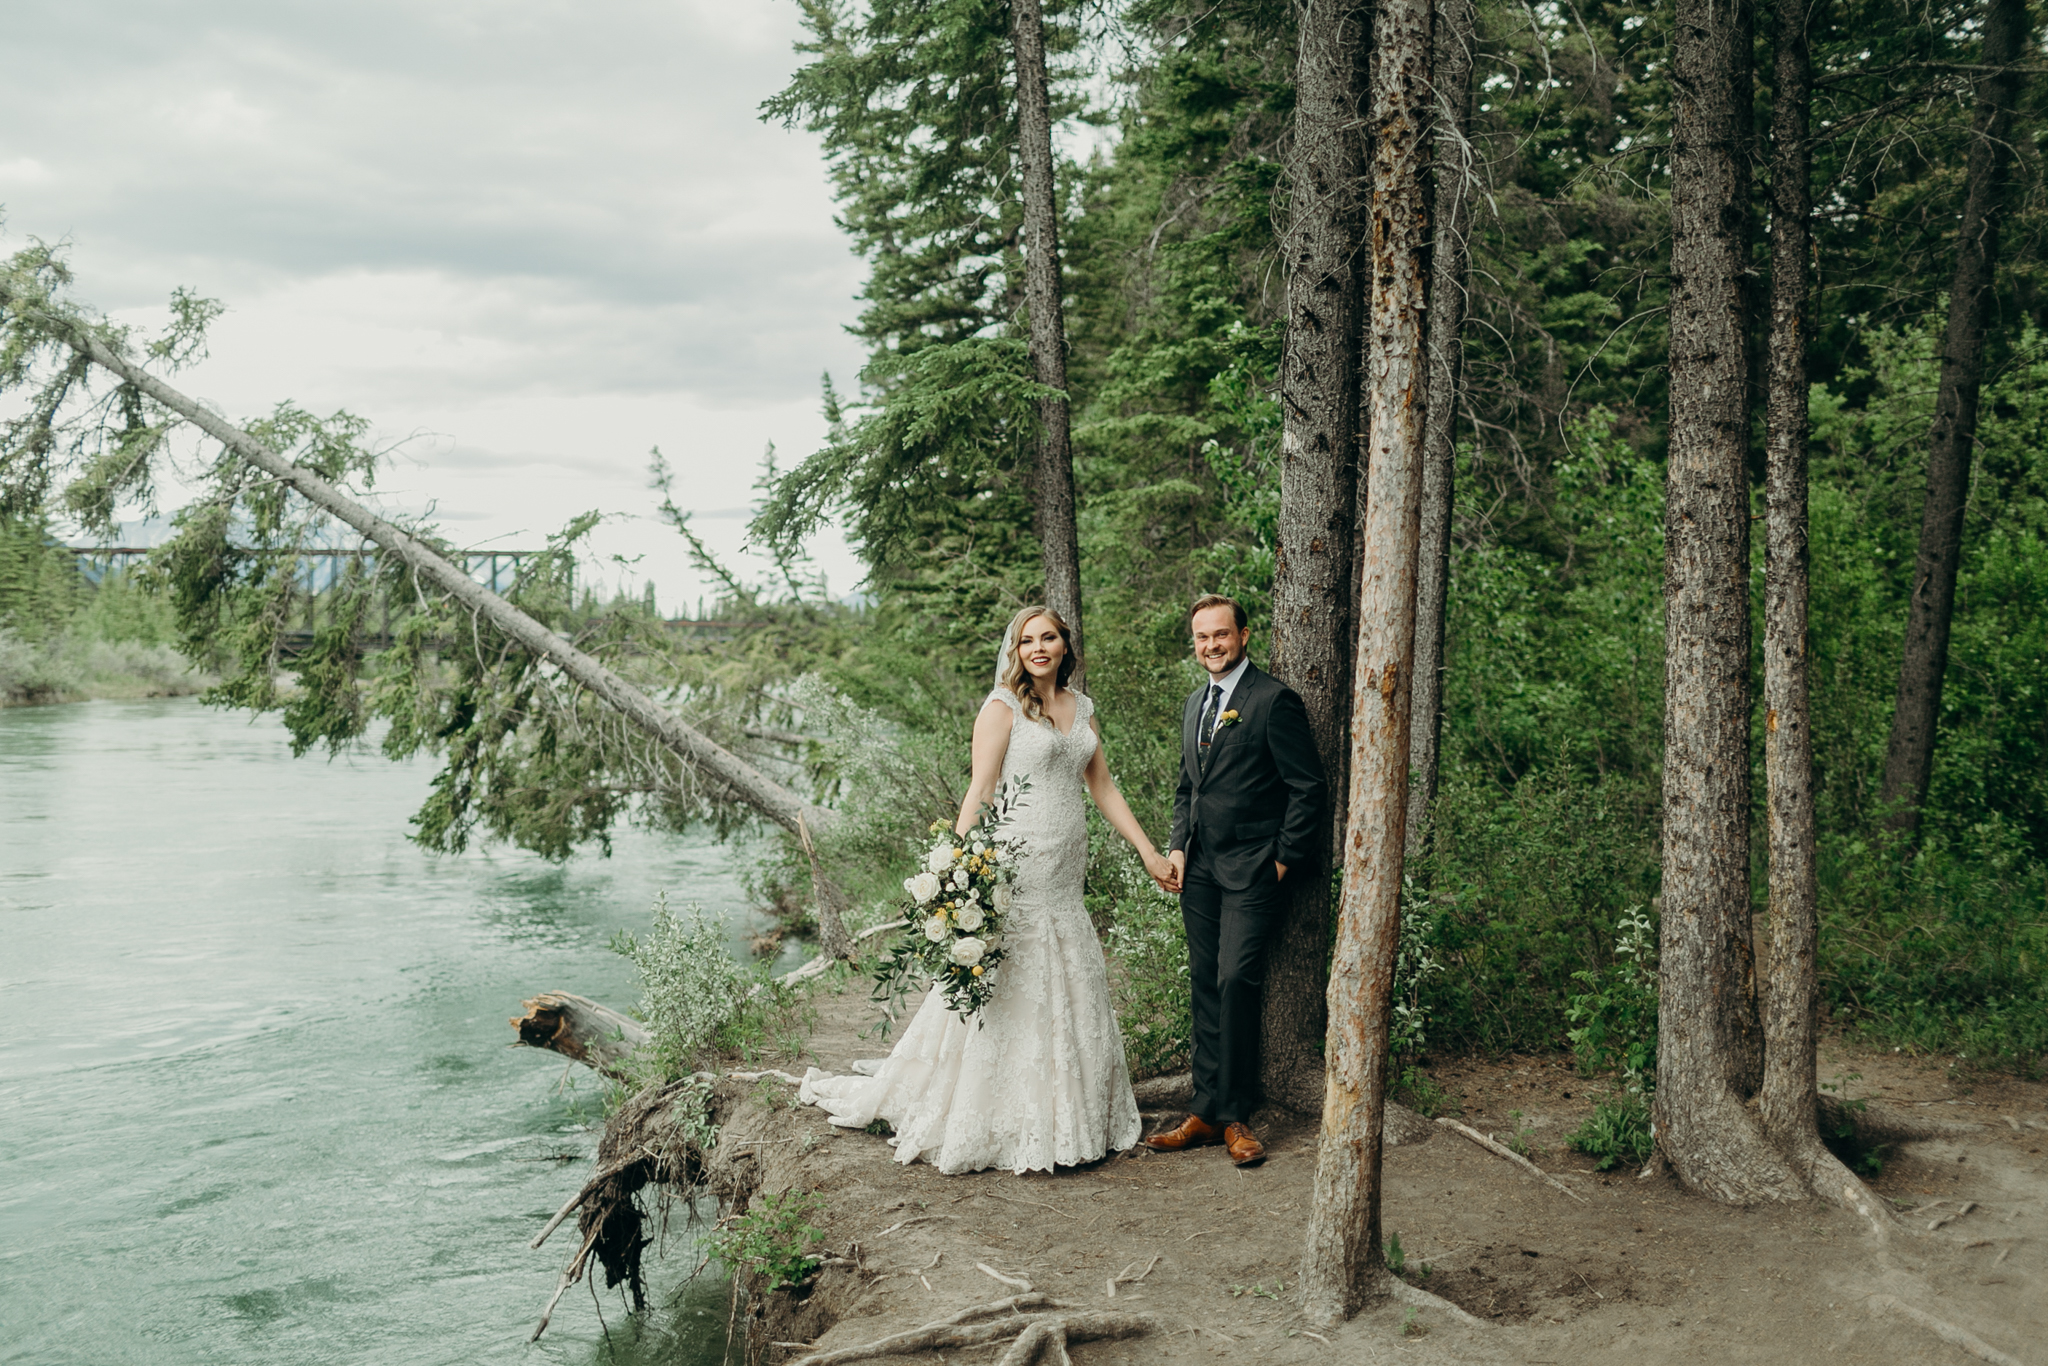 Bride and groom stand on cliff with river in background and fallen tree Canmore Bow River